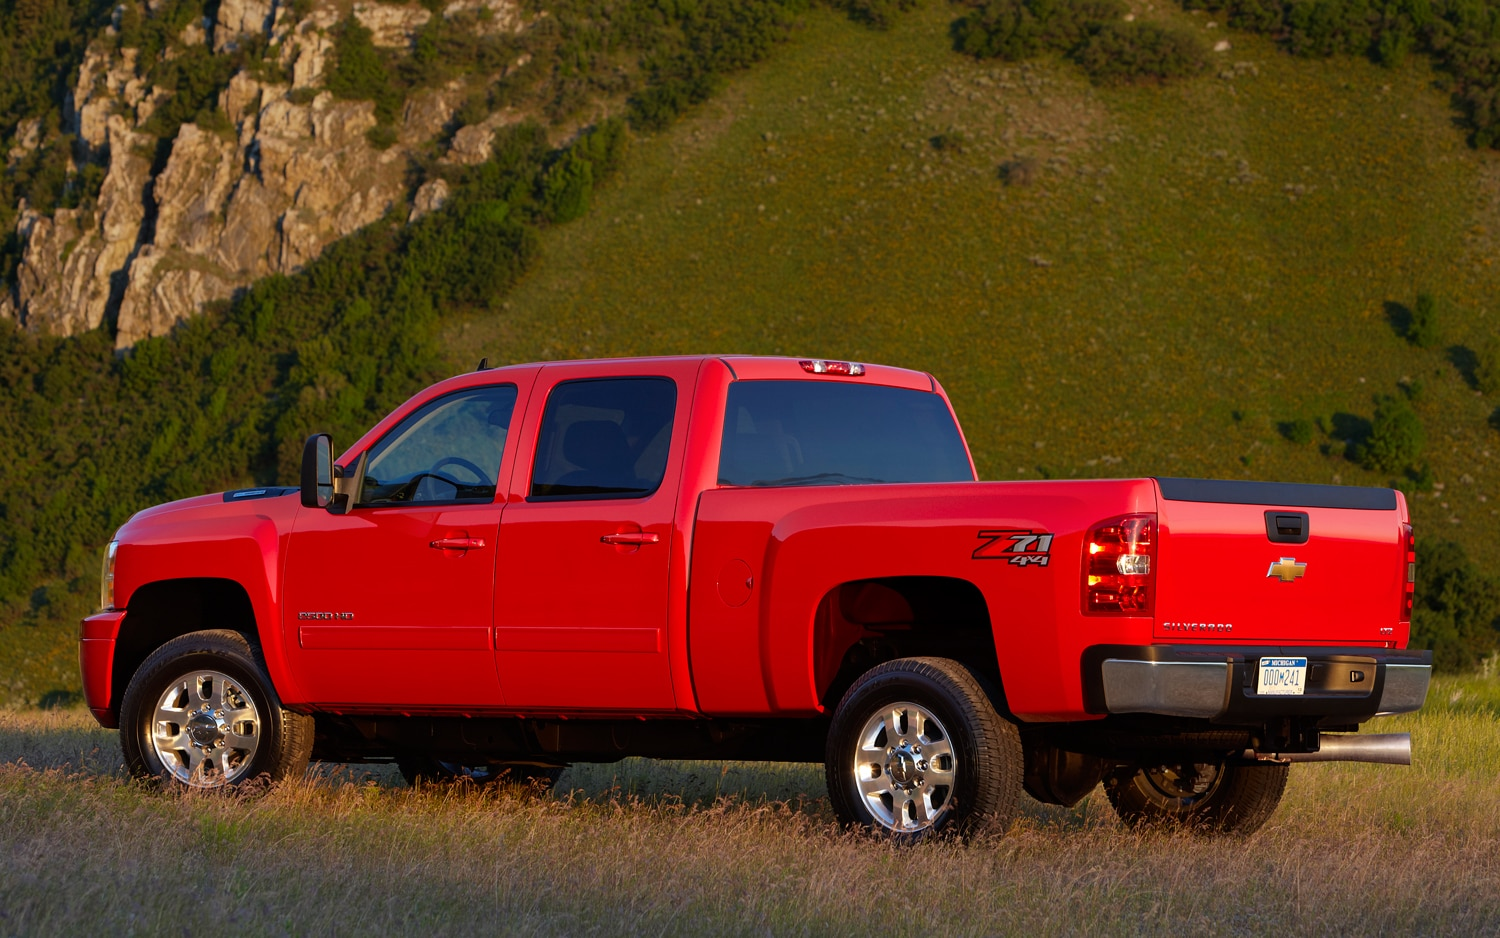 2013 Chevrolet Silverado 2500 HD Rear